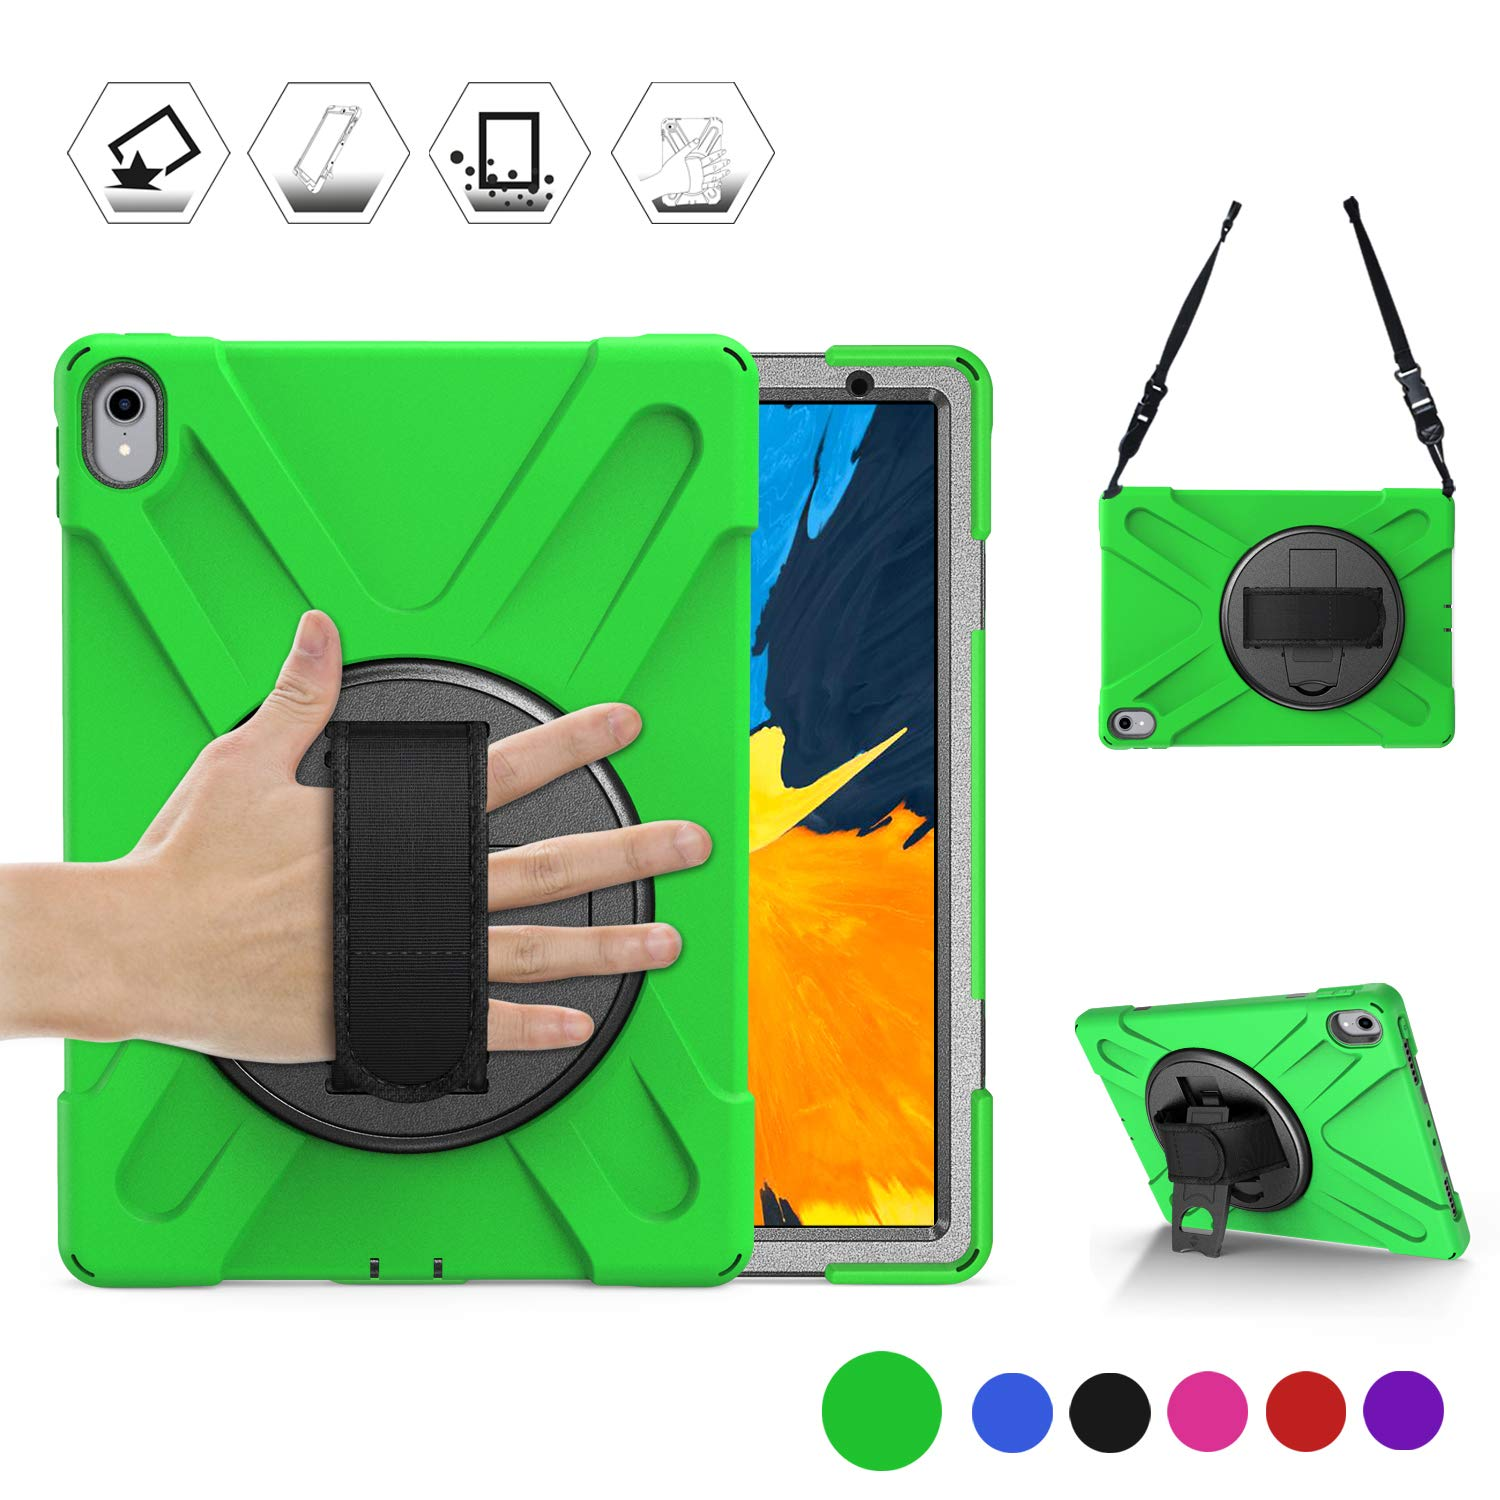 BRAECN iPad Pro 11 Inch 2018 Case, [Not Support iPad Pencil Magnetically Charge/Pair] Hybrid Protection Shockproof Case with Handle Hand Strap, Kickstand& Shoulder Strap for iPad Pro 11 Tablet(Green)